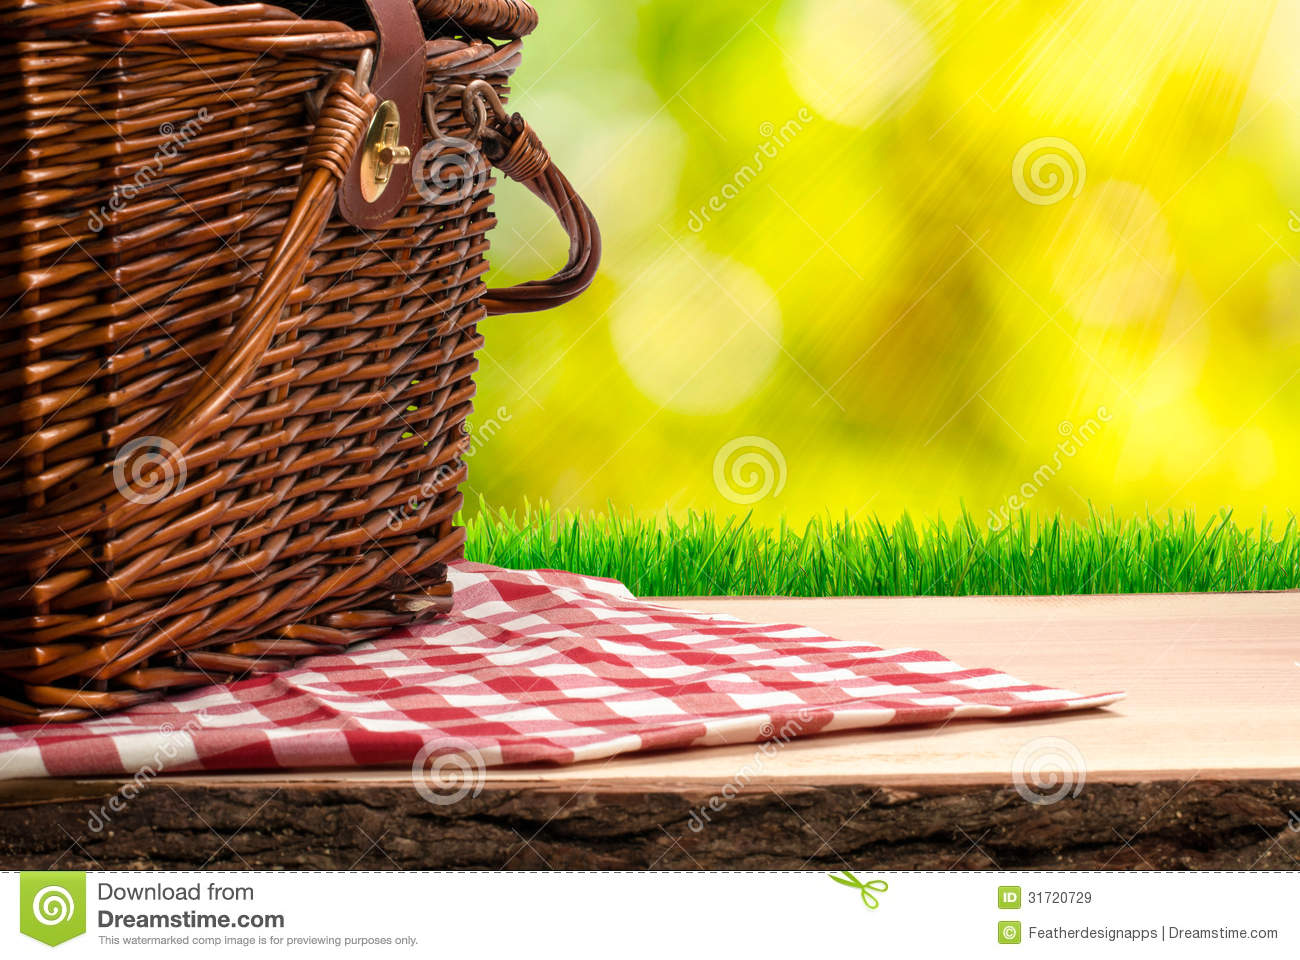 Picnic Basket On The Table Royalty Free Stock Images - Image: 31720729